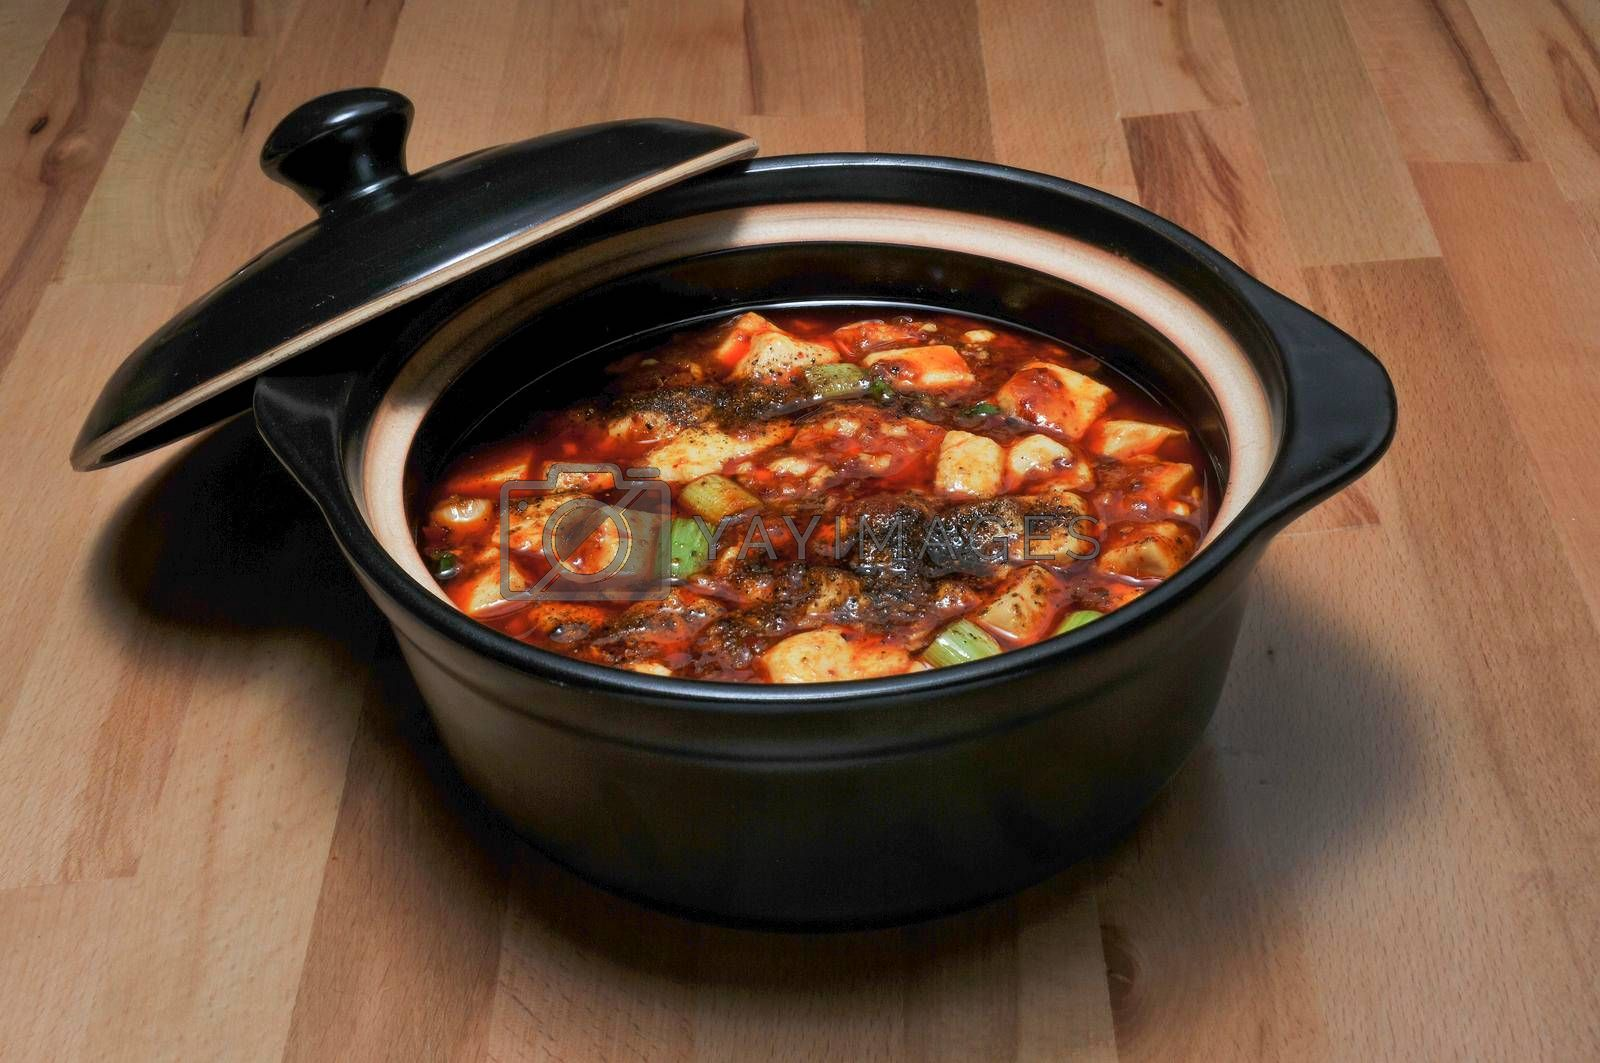 Delicious traditional and authentic Chinese Mapo Tofu